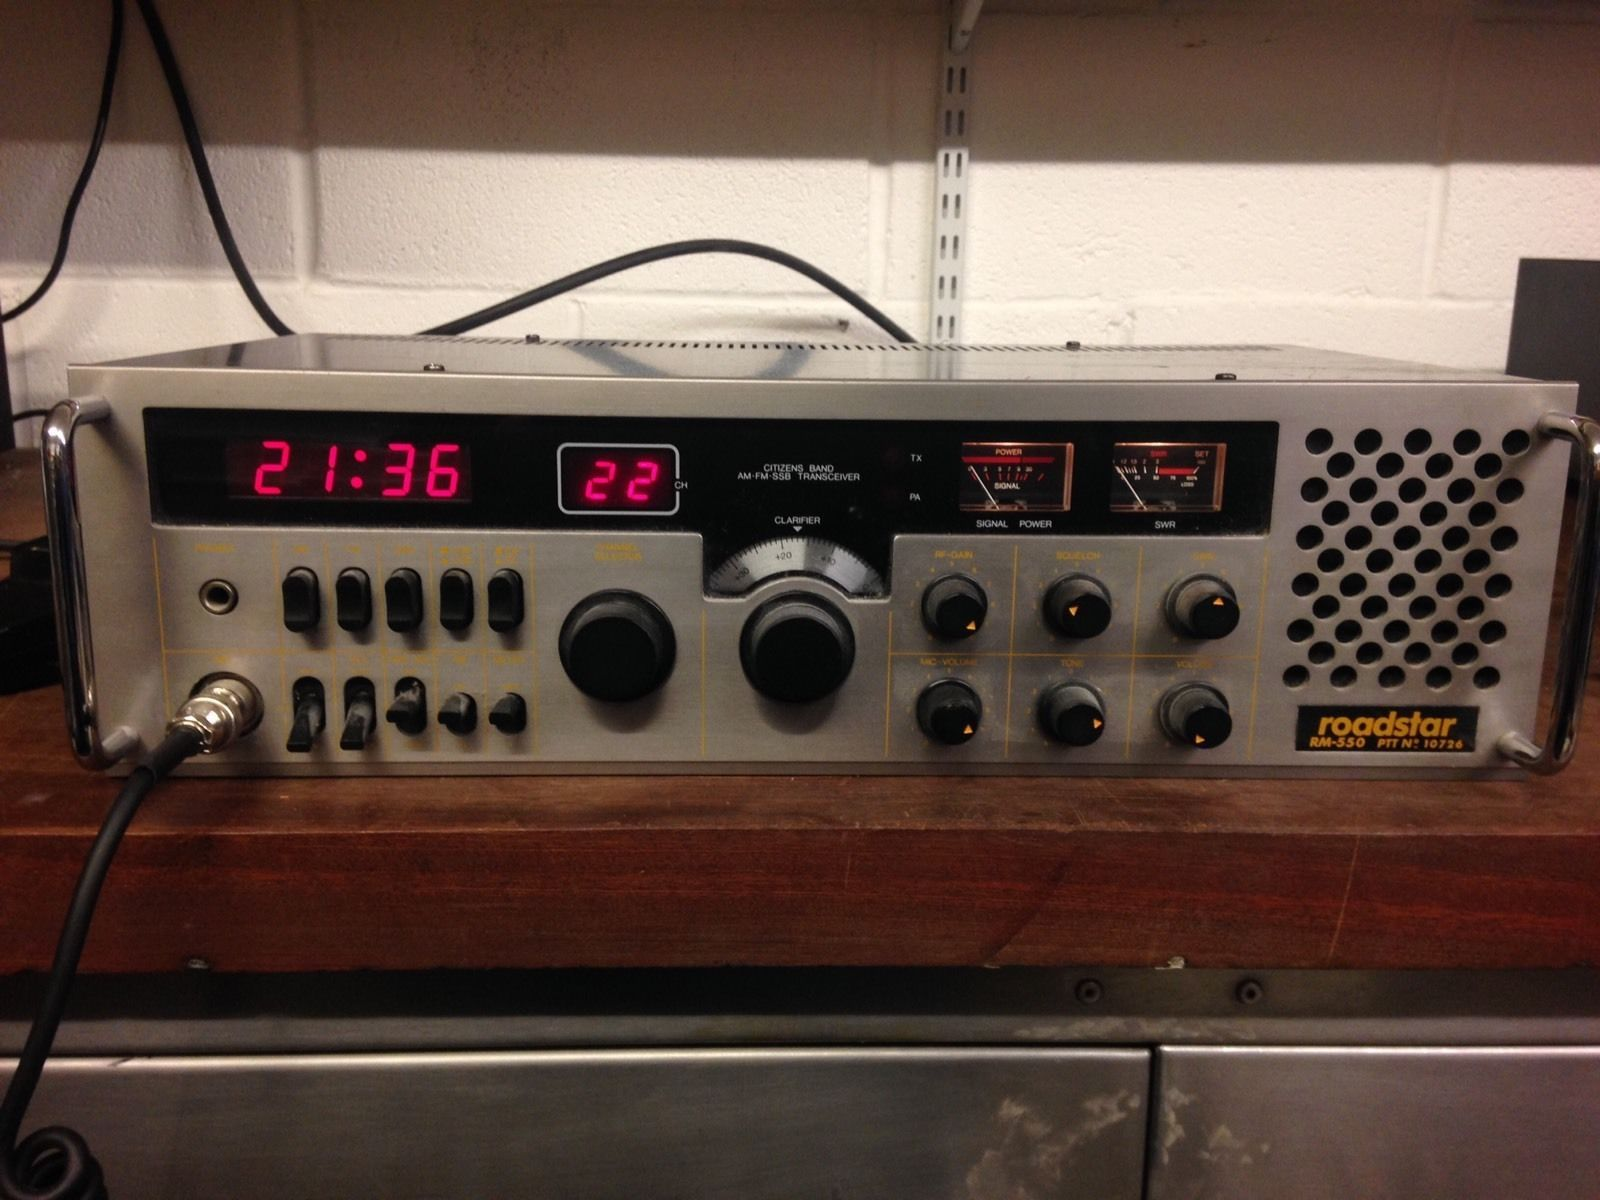 Roadstar Rm-550 Ssb Base Cb Radio Very Rare!! | would love to get